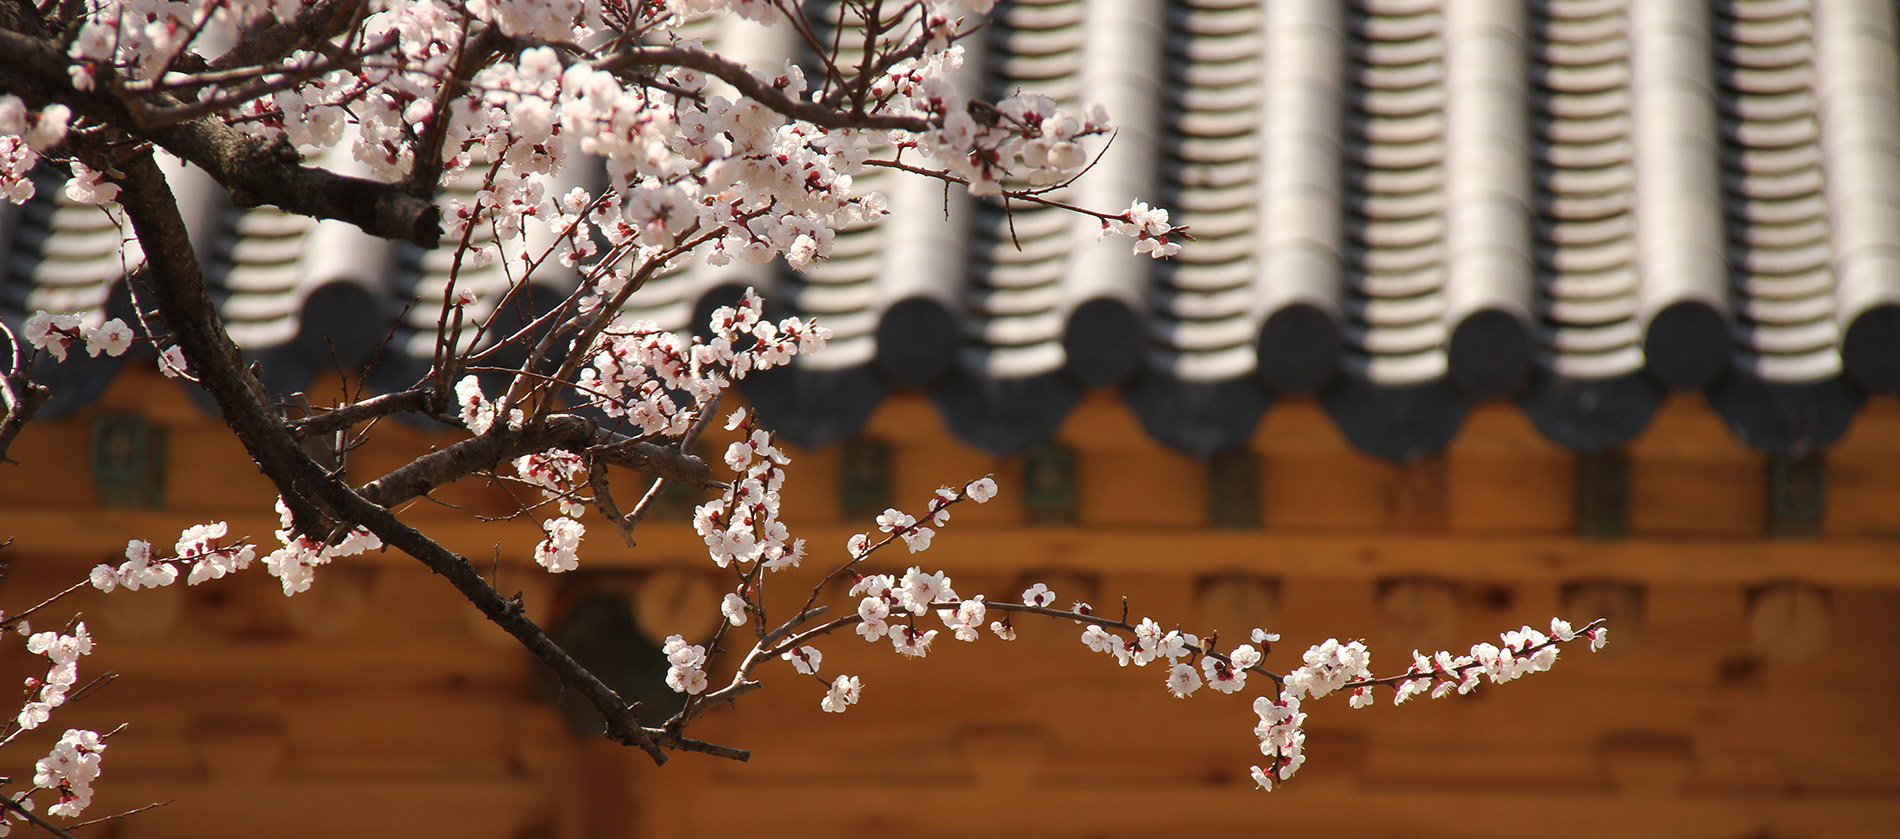 A branch of cherry blossoms in front of a temple.